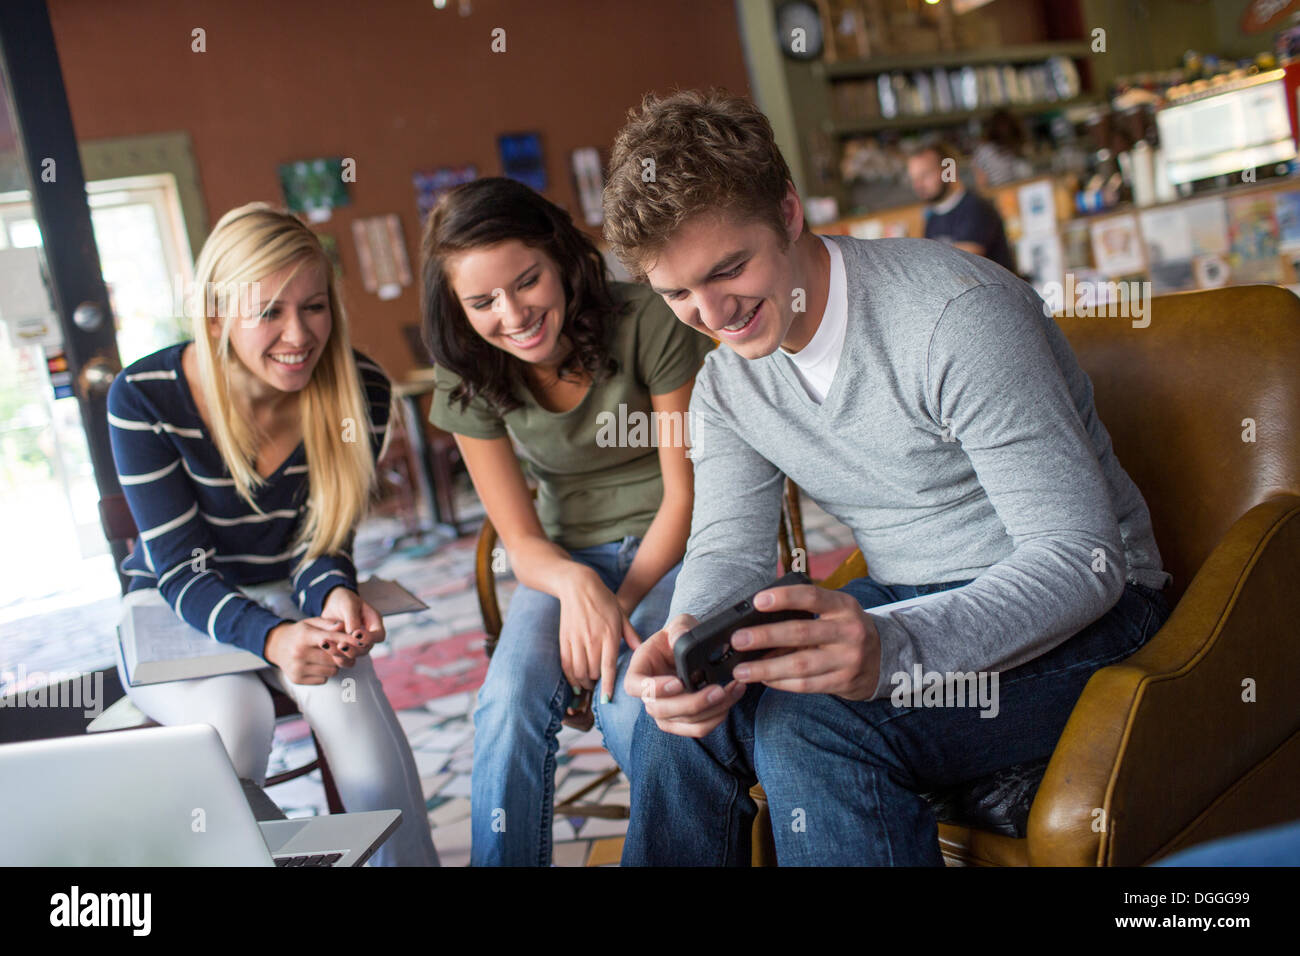 Petit groupe de personnes looking at smartphone in cafe Photo Stock